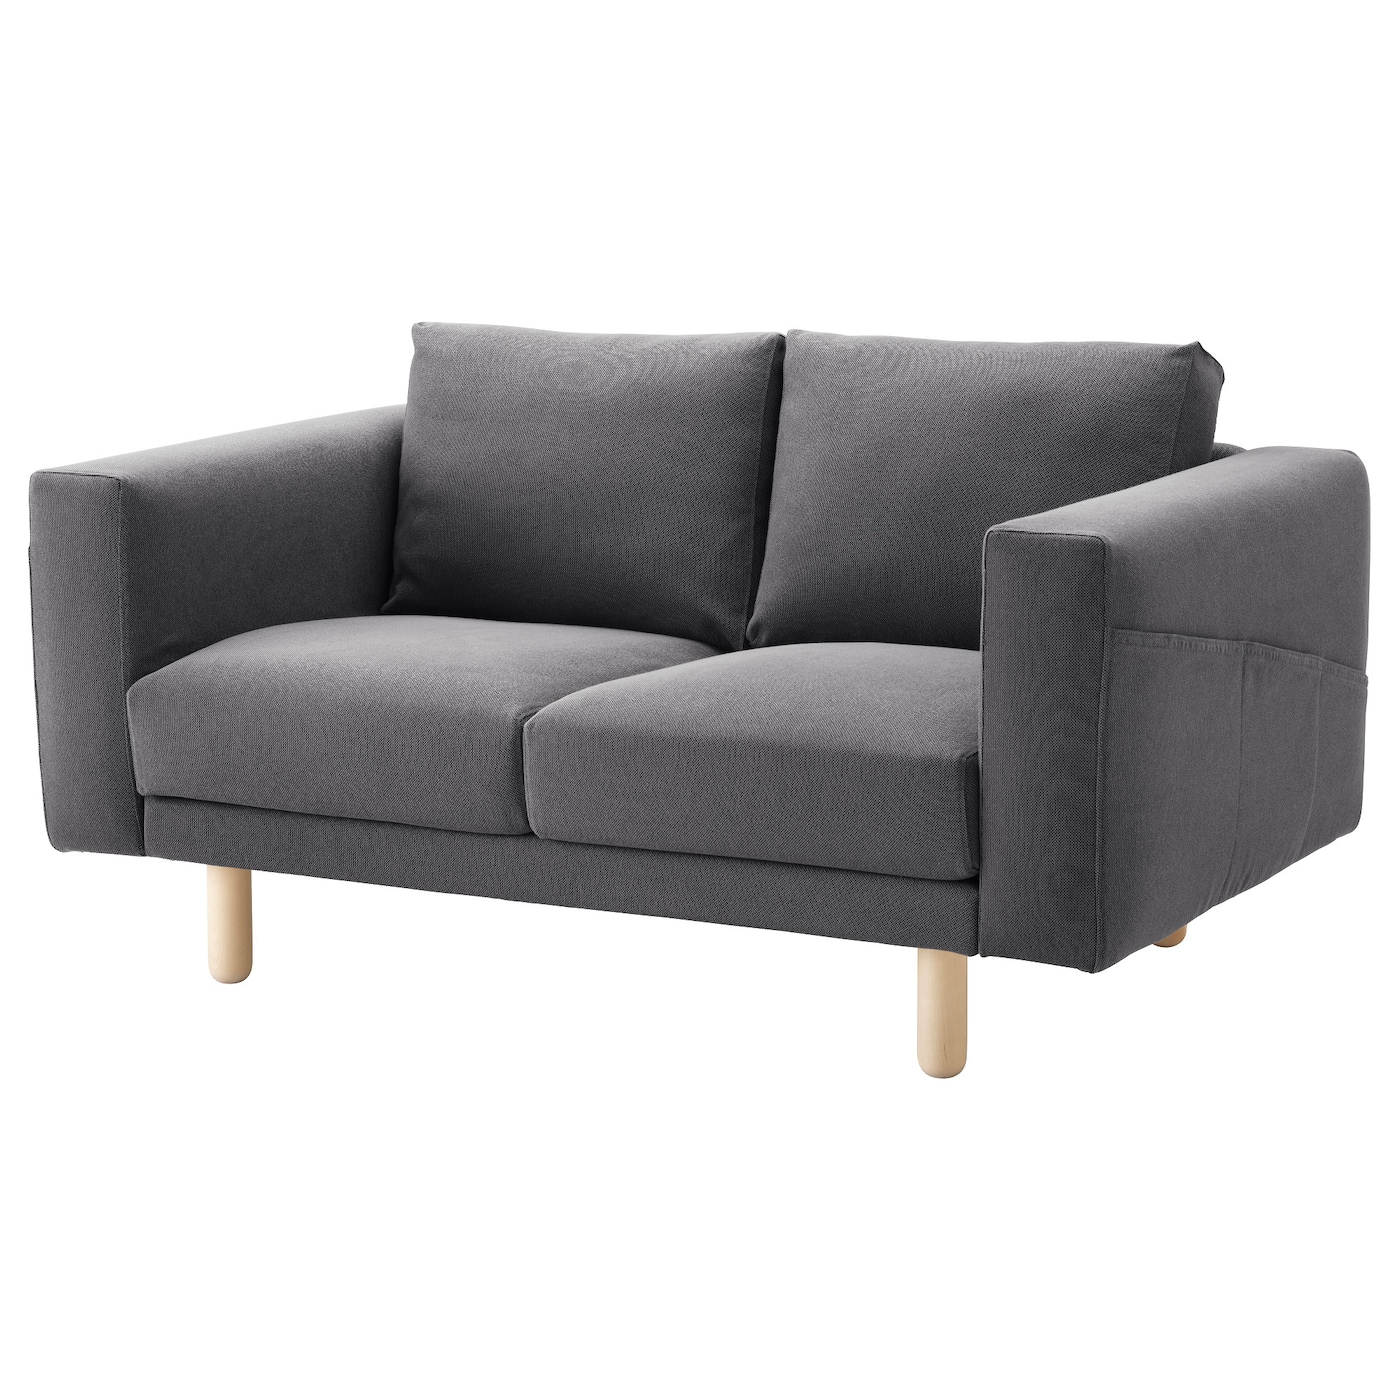 norsborg 2 seat sofa finnsta dark grey birch ikea. Black Bedroom Furniture Sets. Home Design Ideas